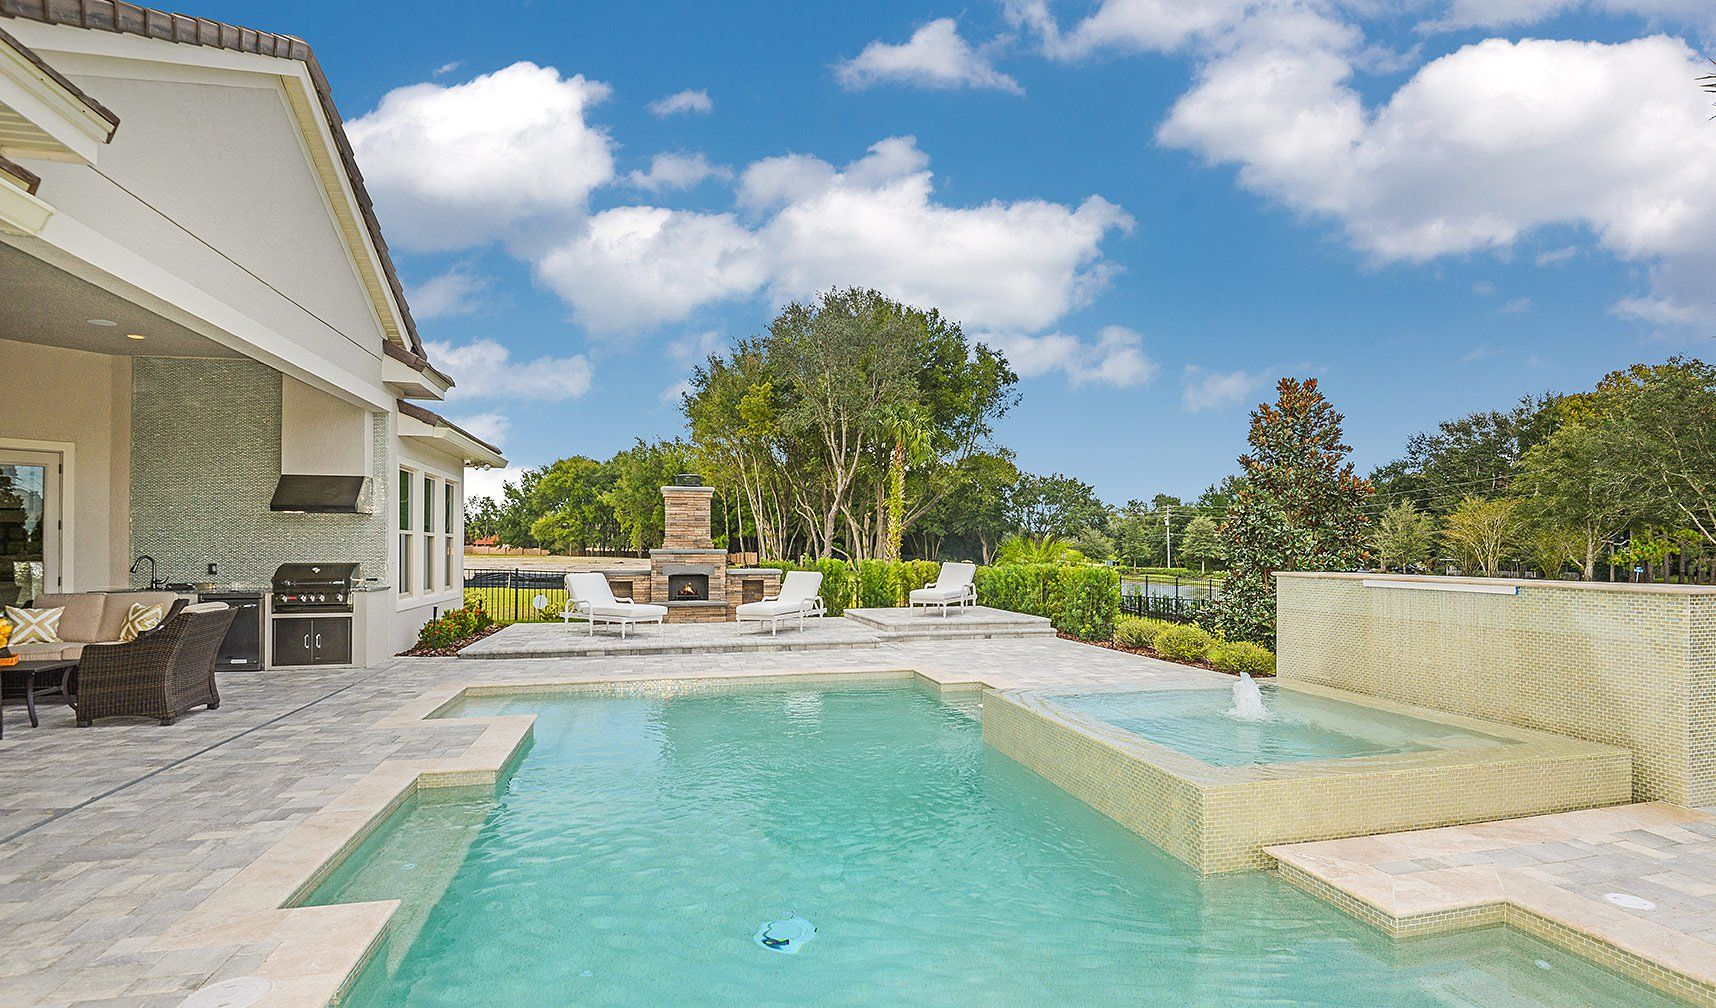 Photo of Estancia at Windermere in Windermere, FL 34786